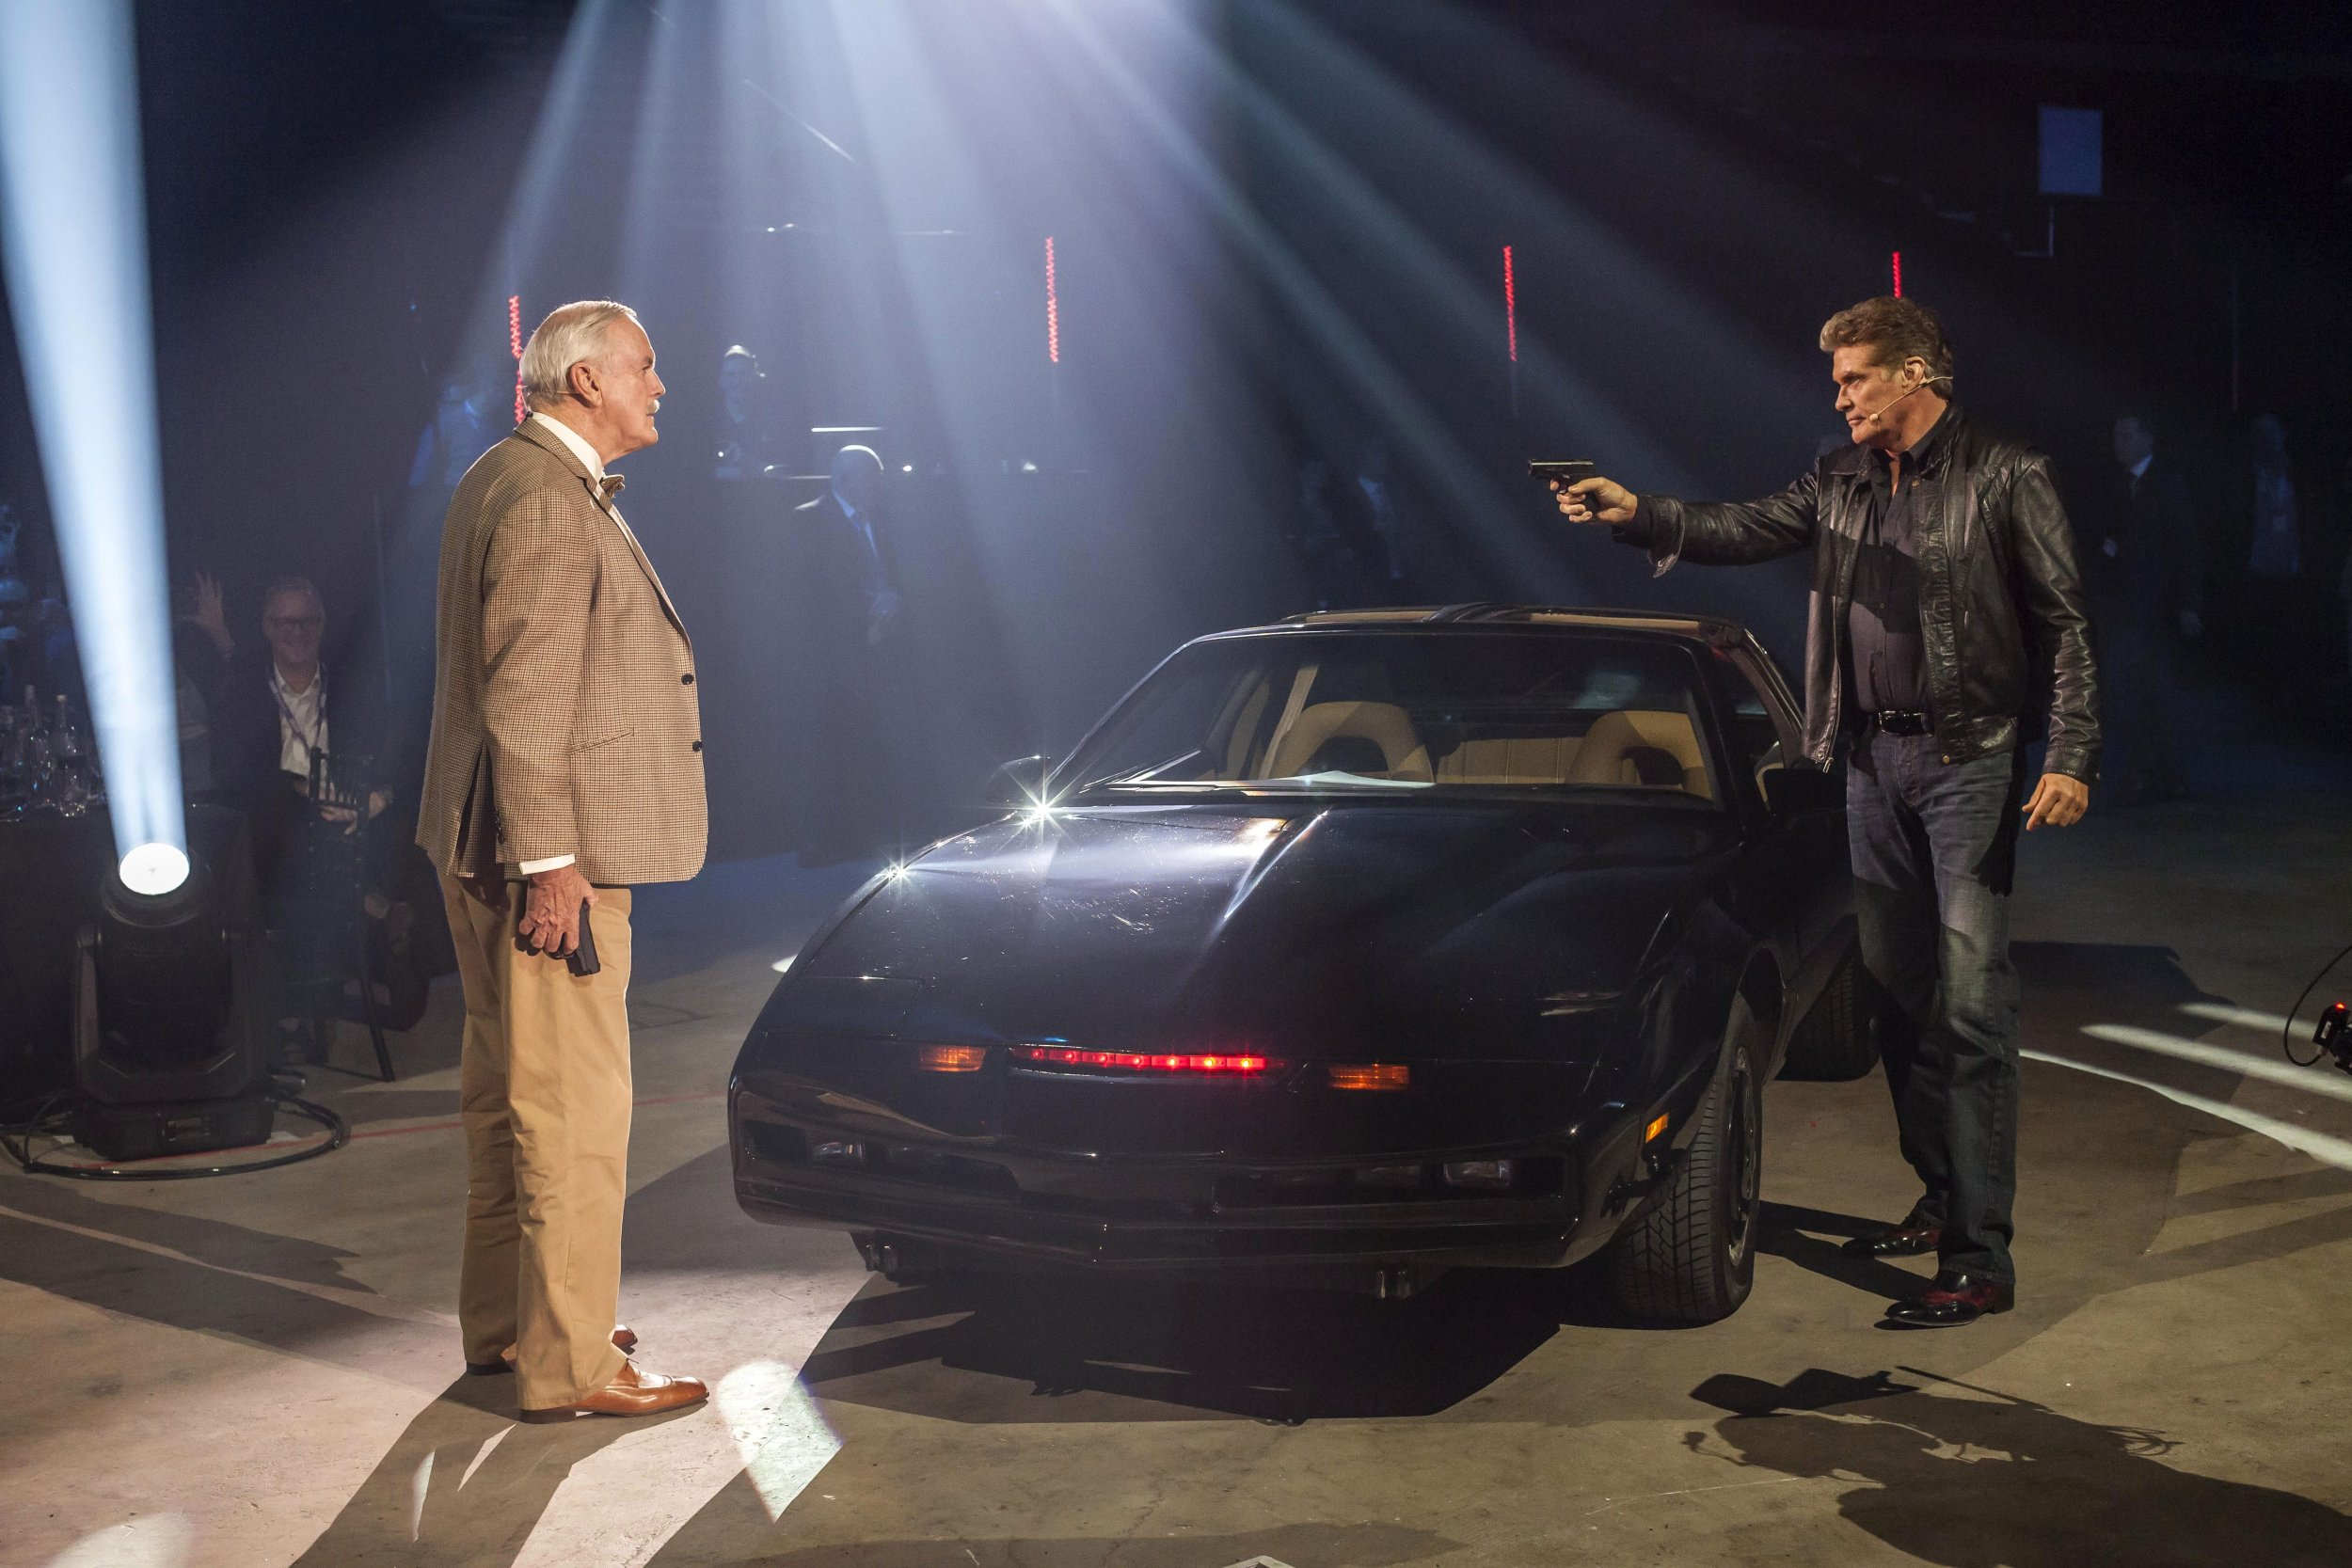 The Case Of The Missing Knight Rider Cars